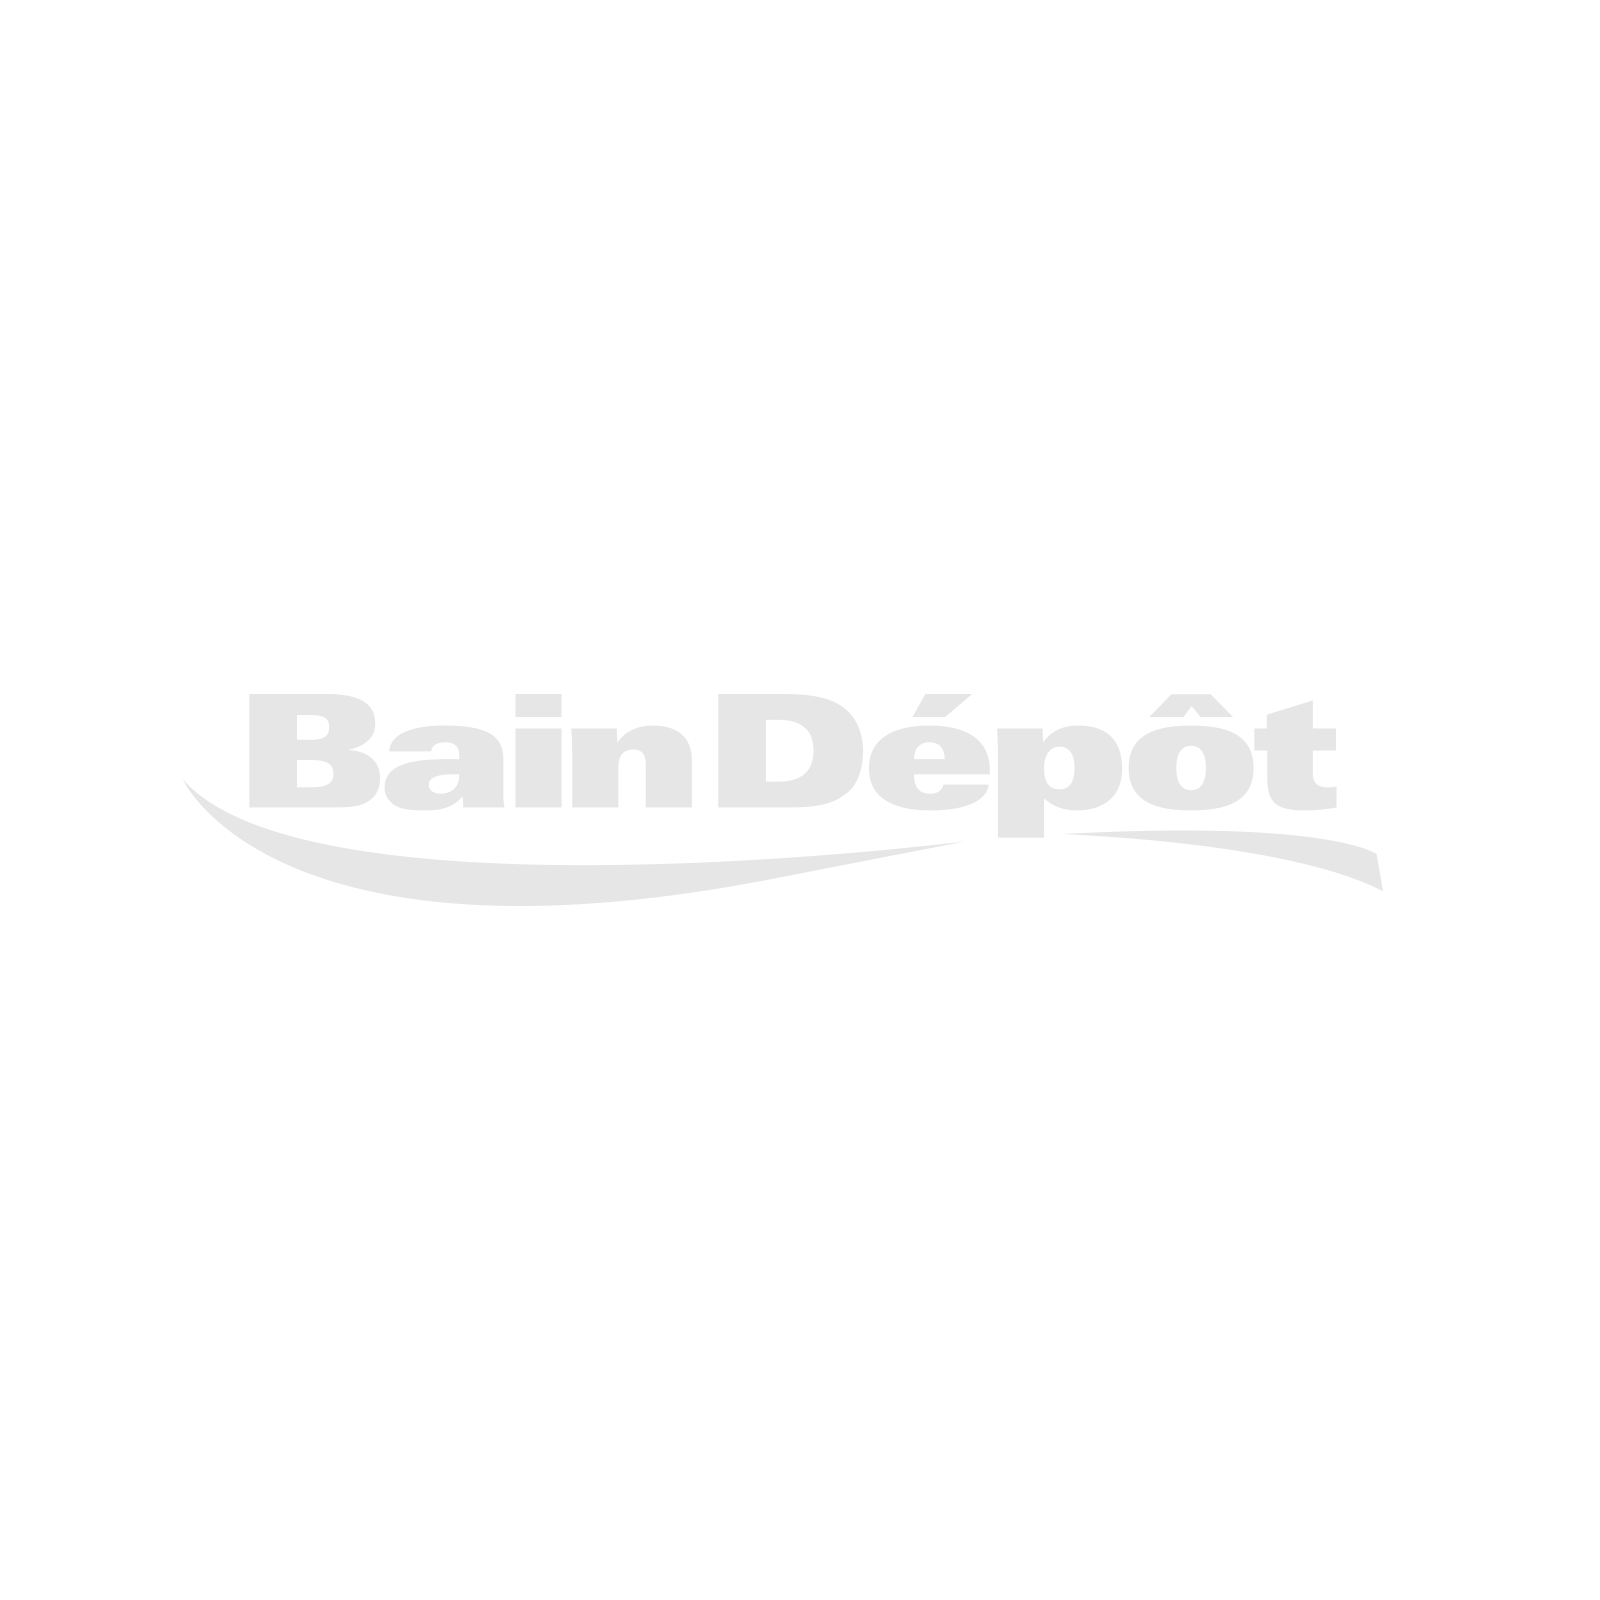 Replacement cartridge with notched tip for cold water